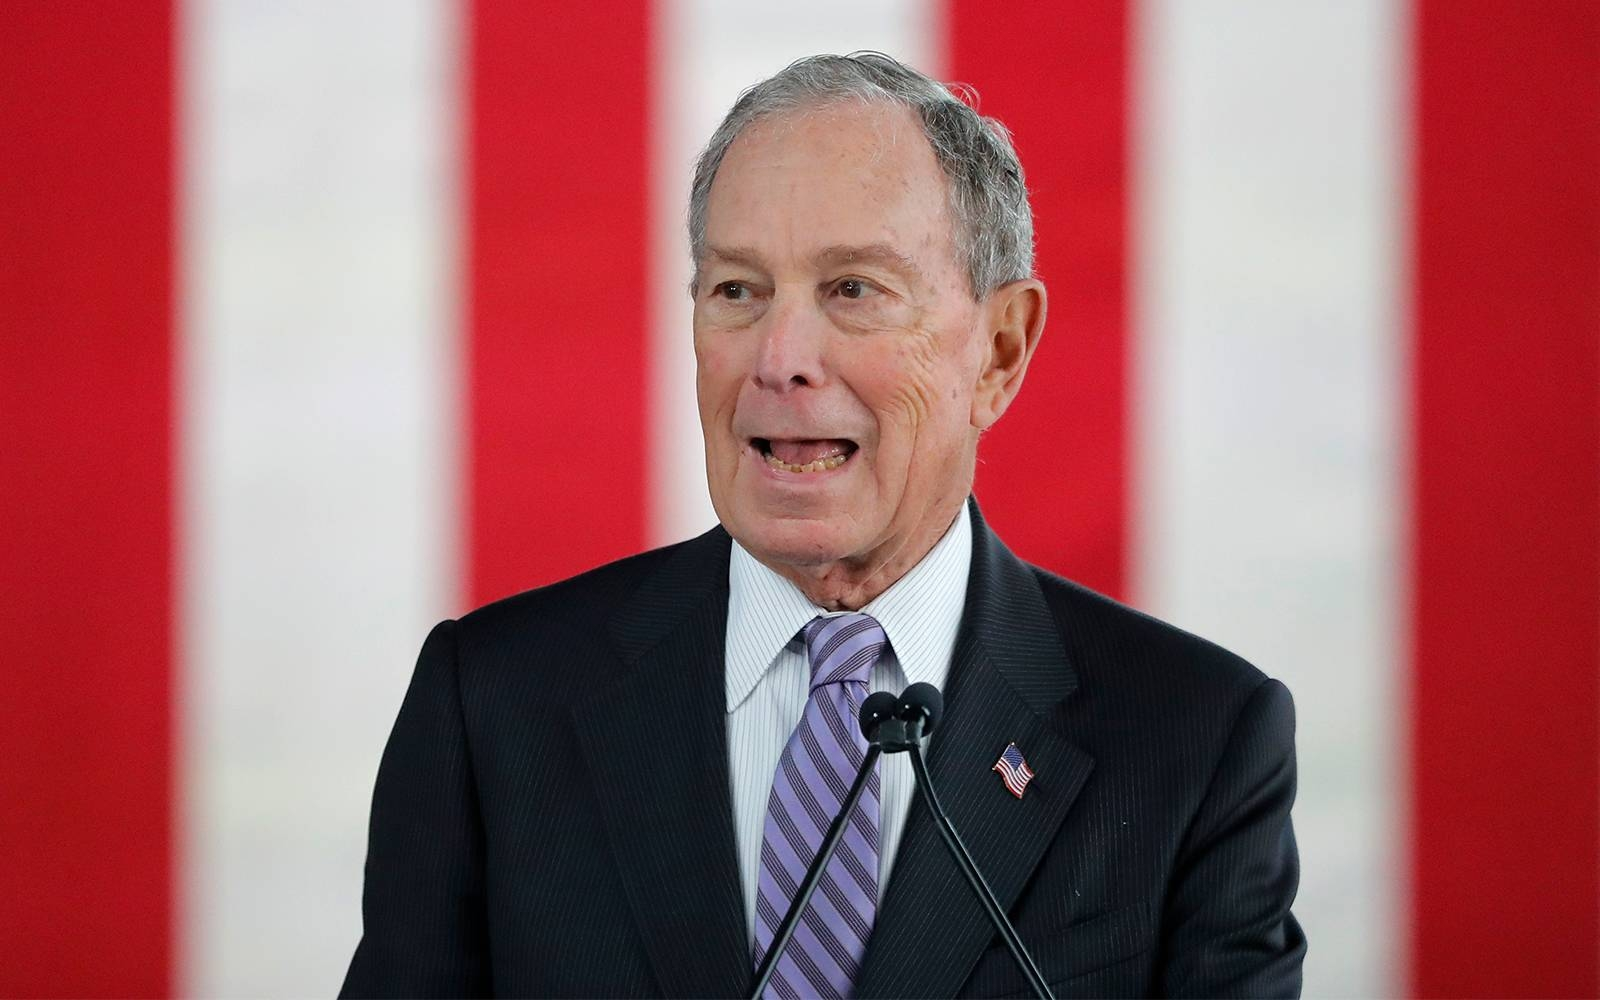 Democratic presidential candidate and former New York City mayor Mike Bloomberg speaks at a campaign event in Raleigh, North Carolina, in this Feb. 13, 2020 file photo. — AFP